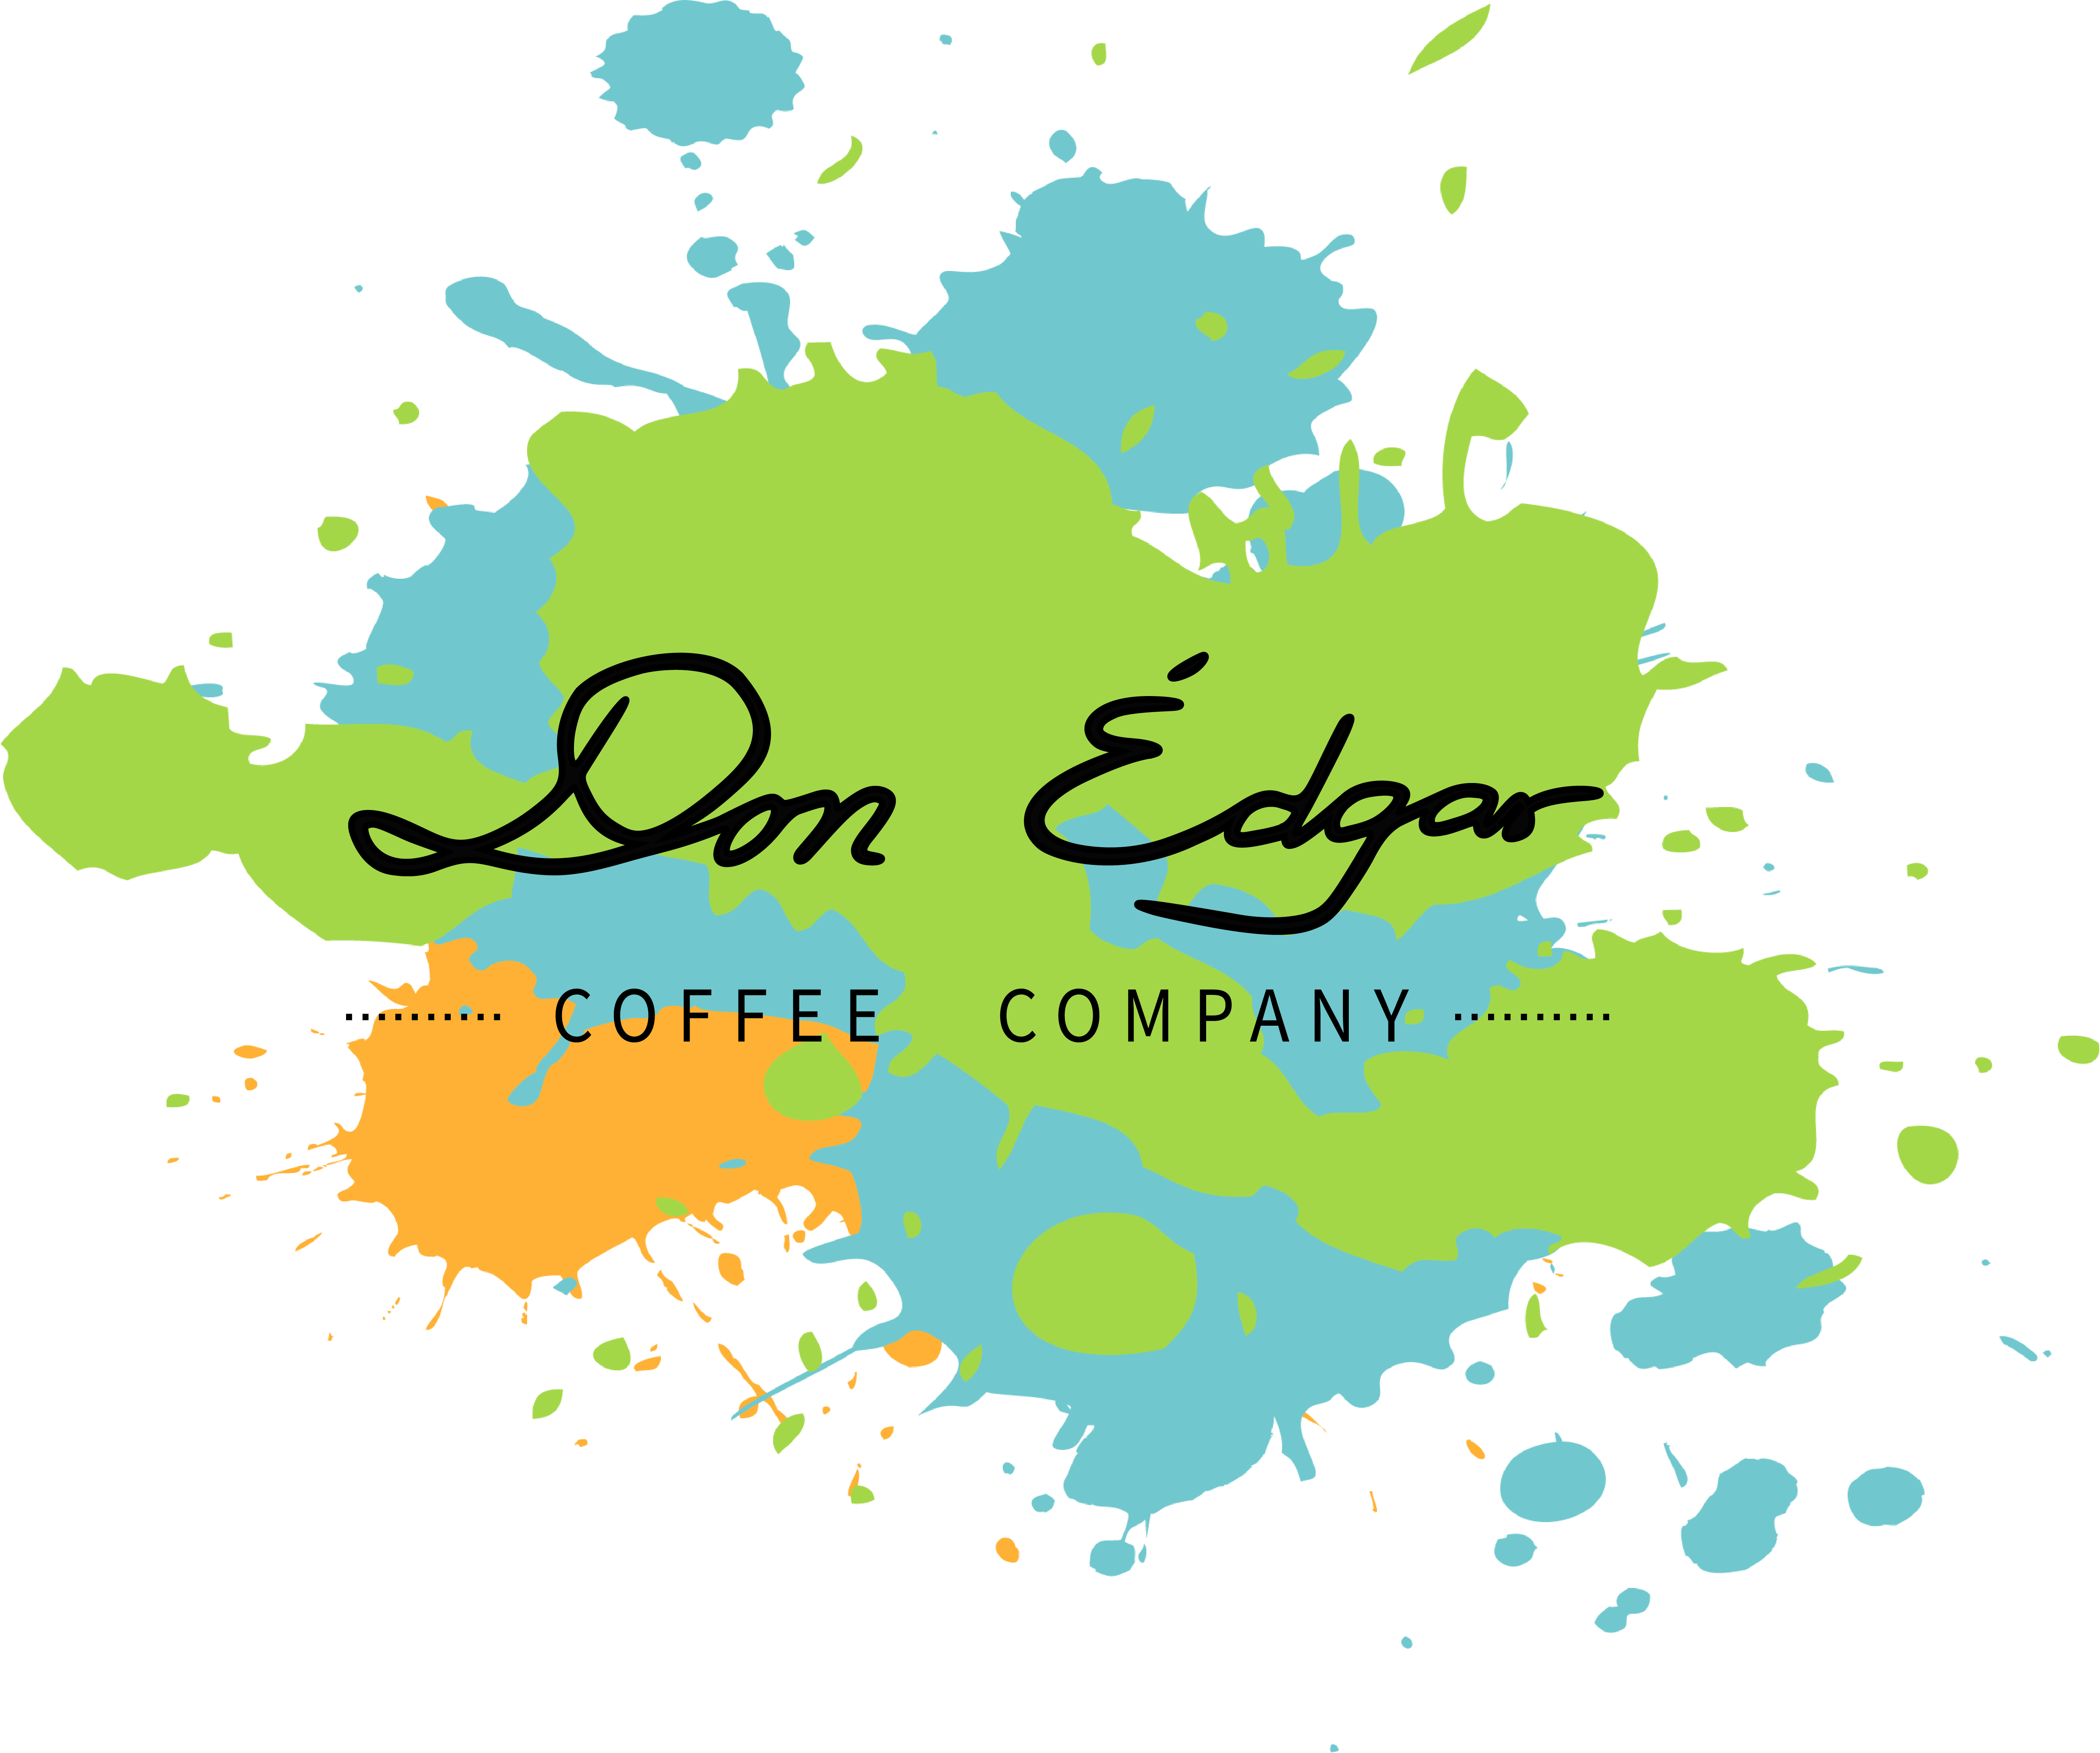 Don Edgar Coffee Company logo